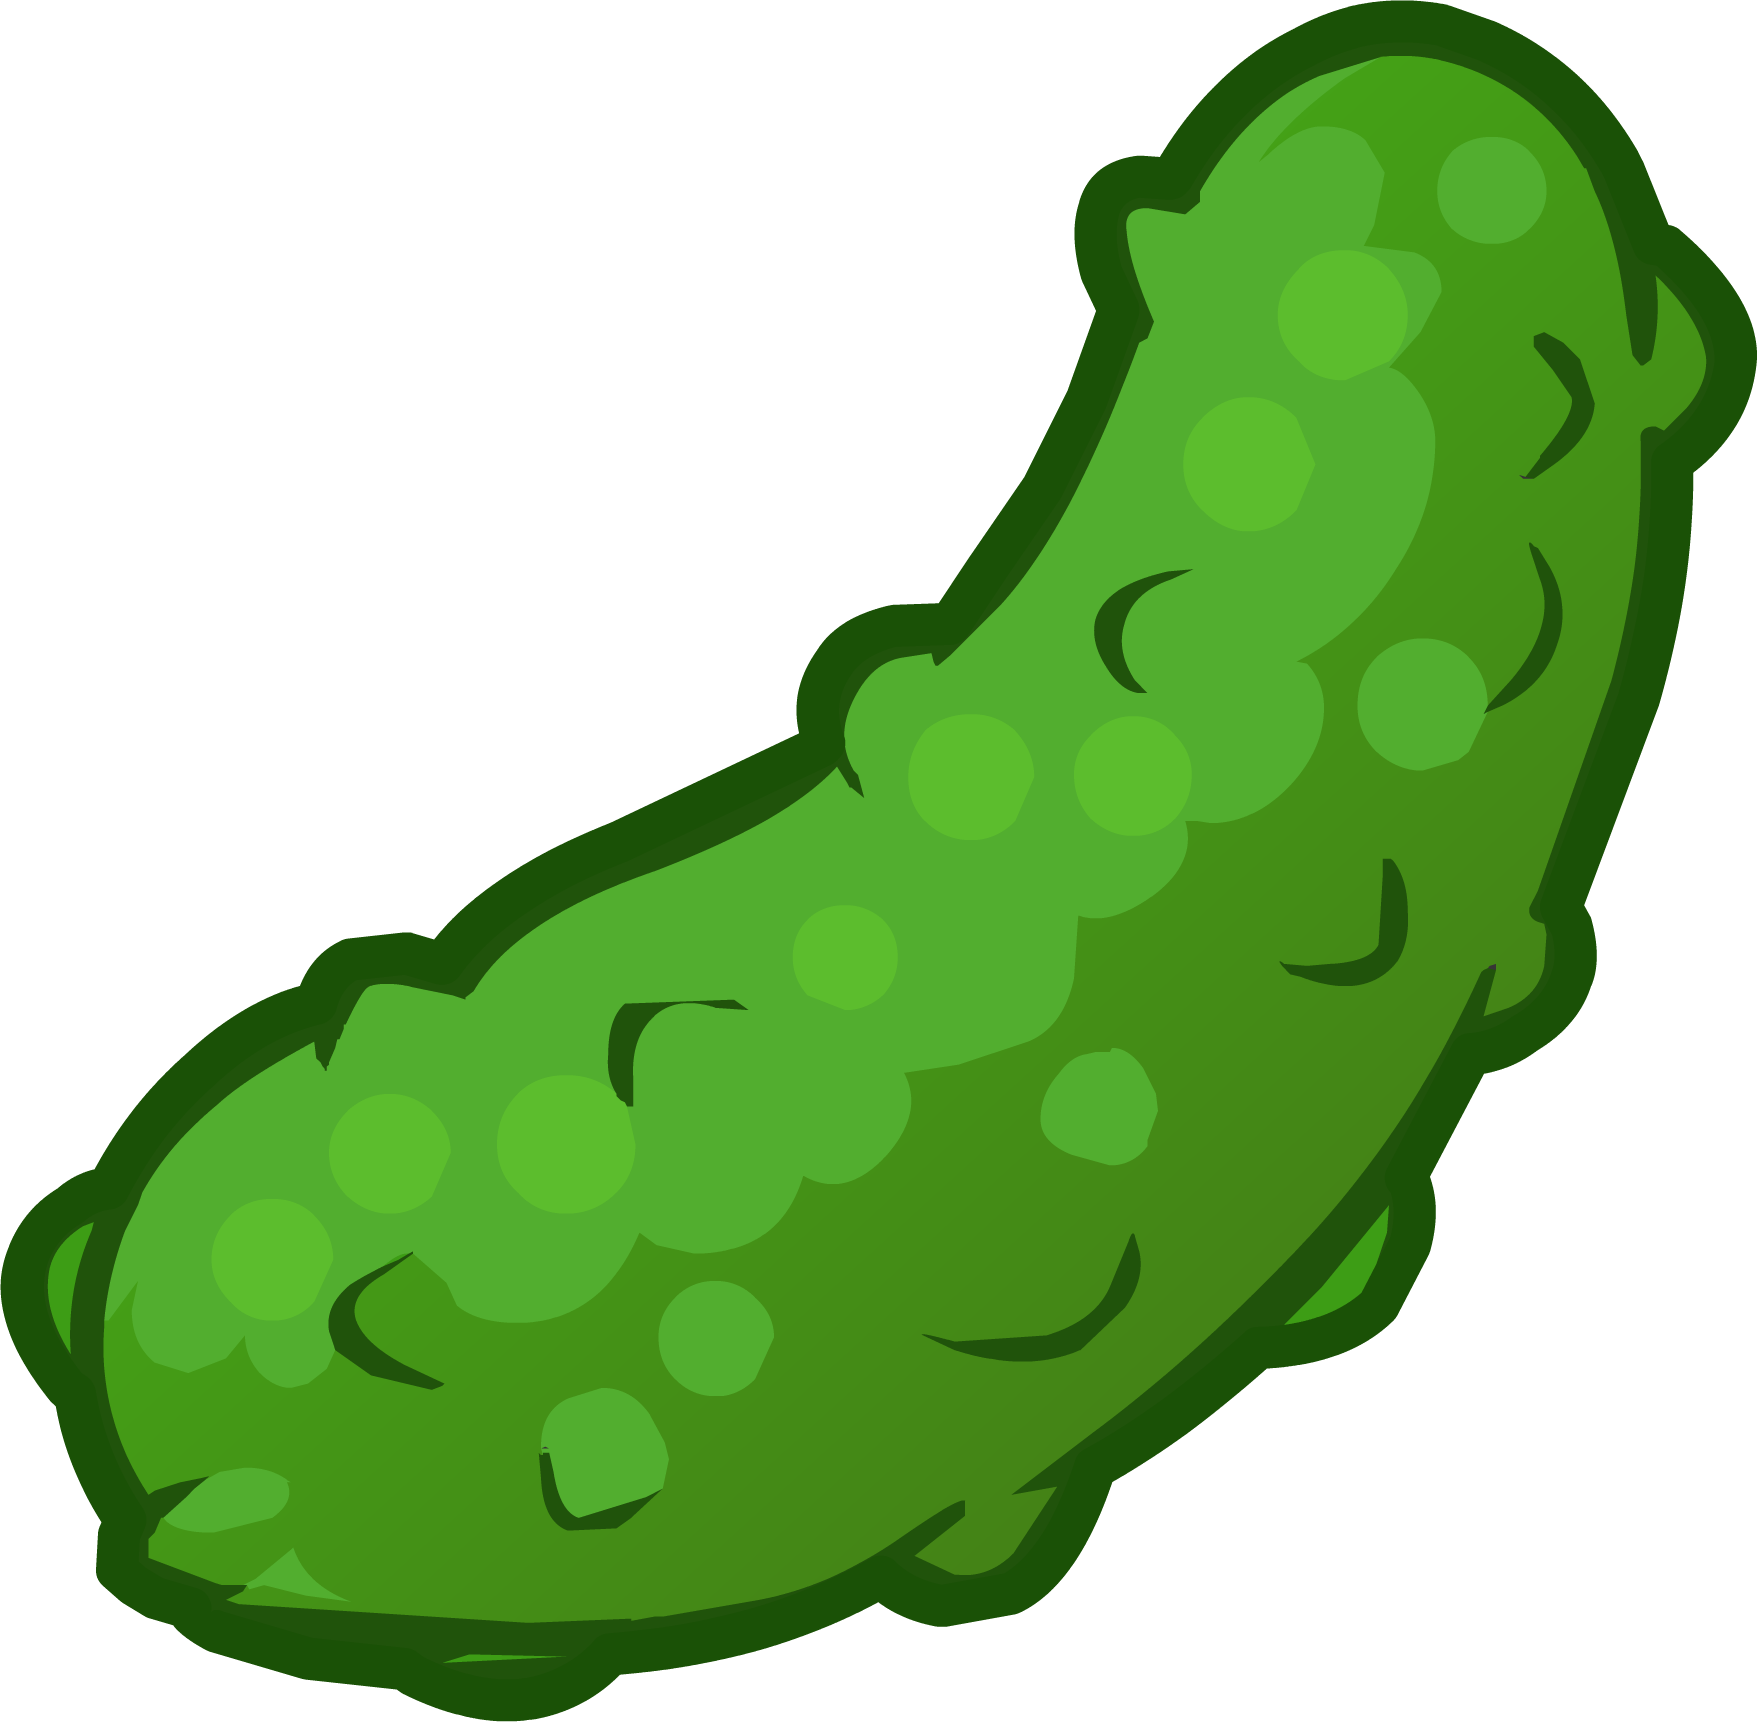 Pickles clipart Pickles Pictures Clipart on